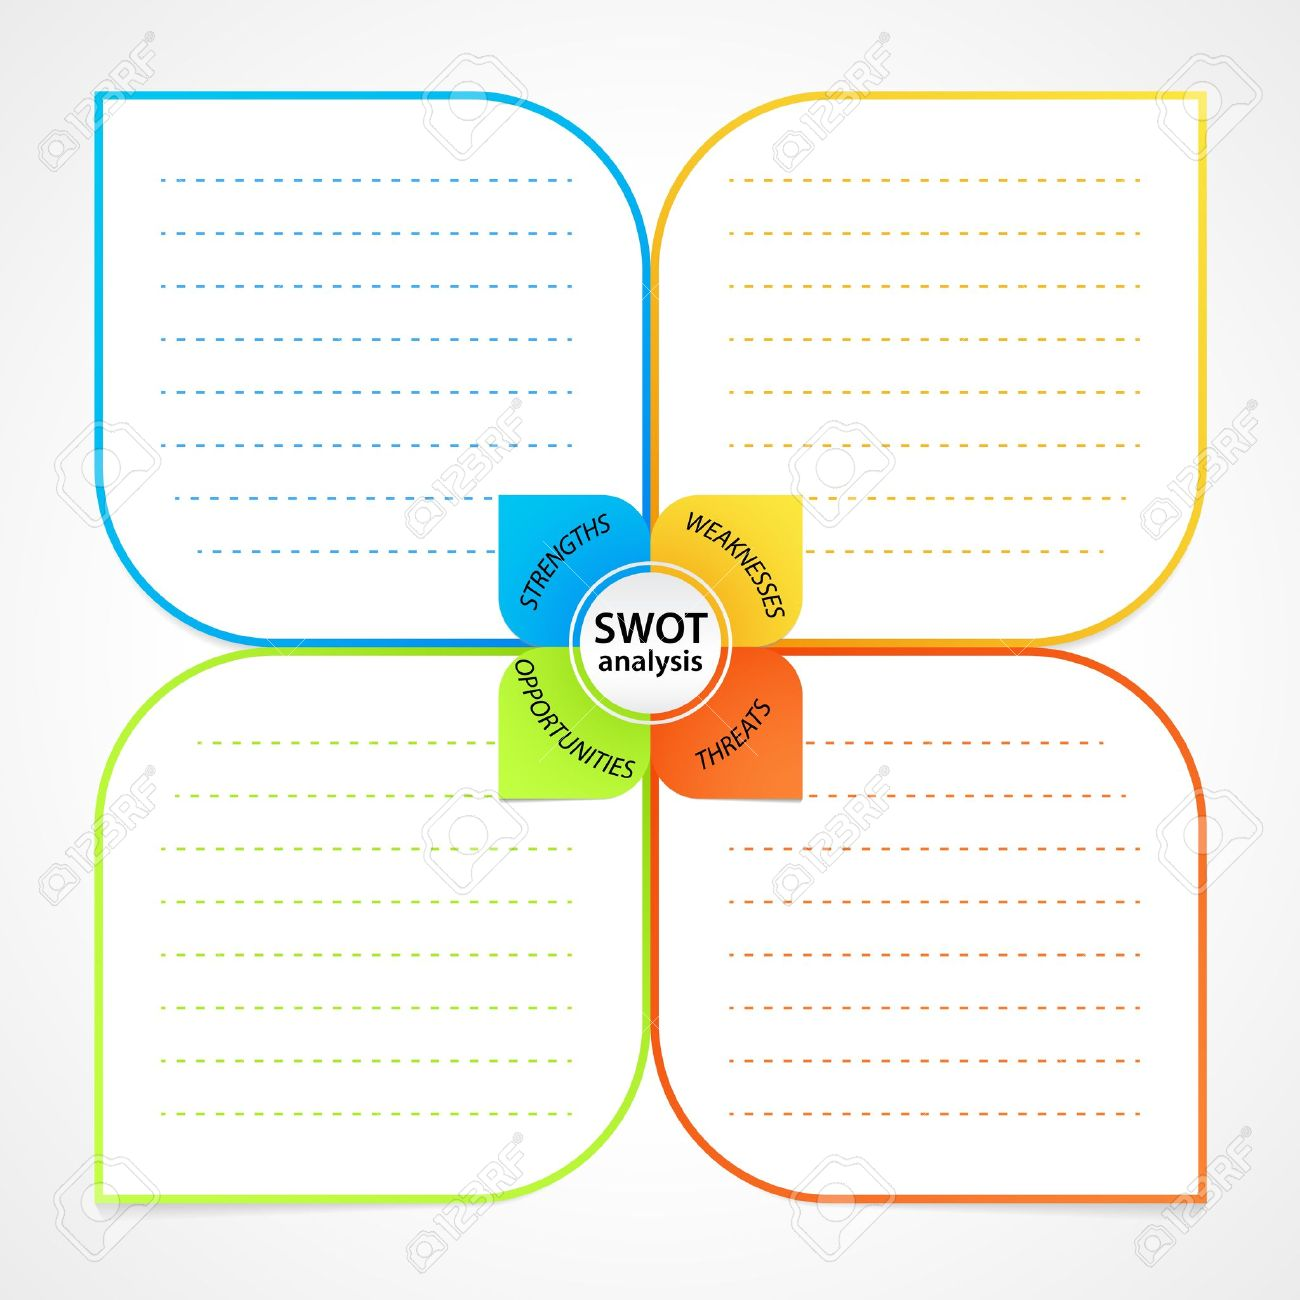 Sheet with swot analysis diagram wit space for own strengths sheet with swot analysis diagram wit space for own strengths weaknesses threats and opportunities ccuart Image collections